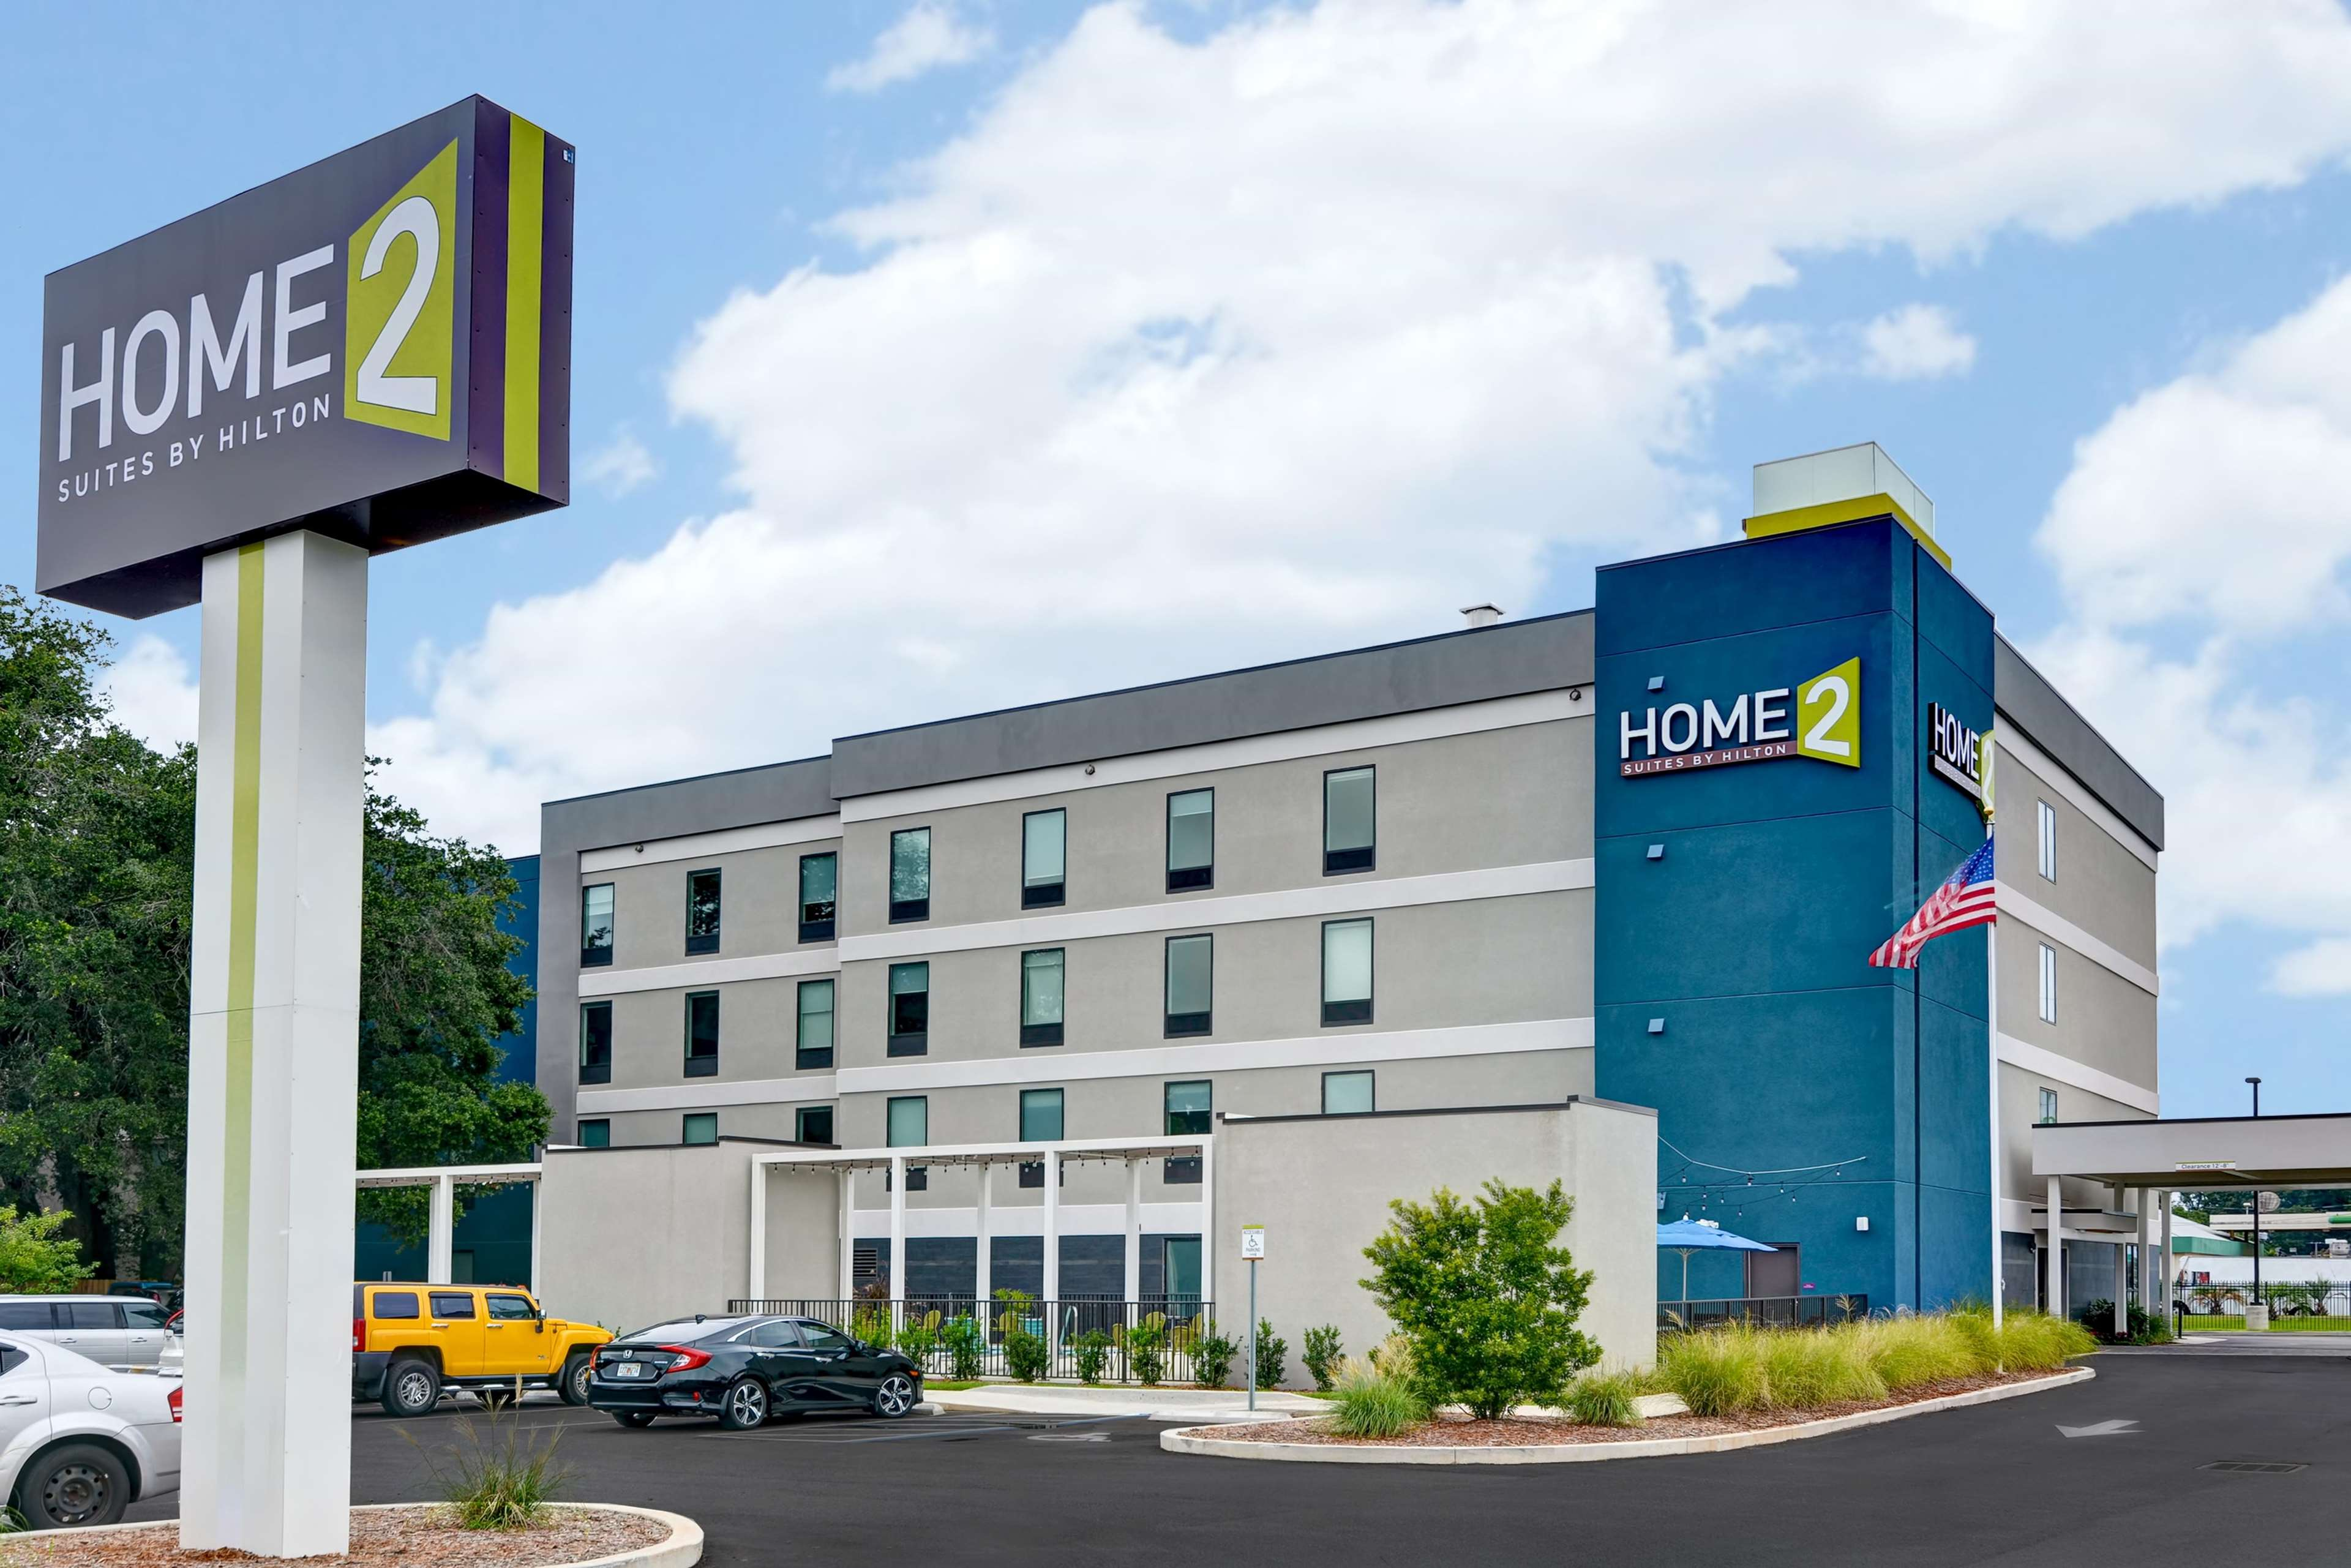 Home2 Suites by Hilton Pensacola I-10 at North Davis Hwy image 0